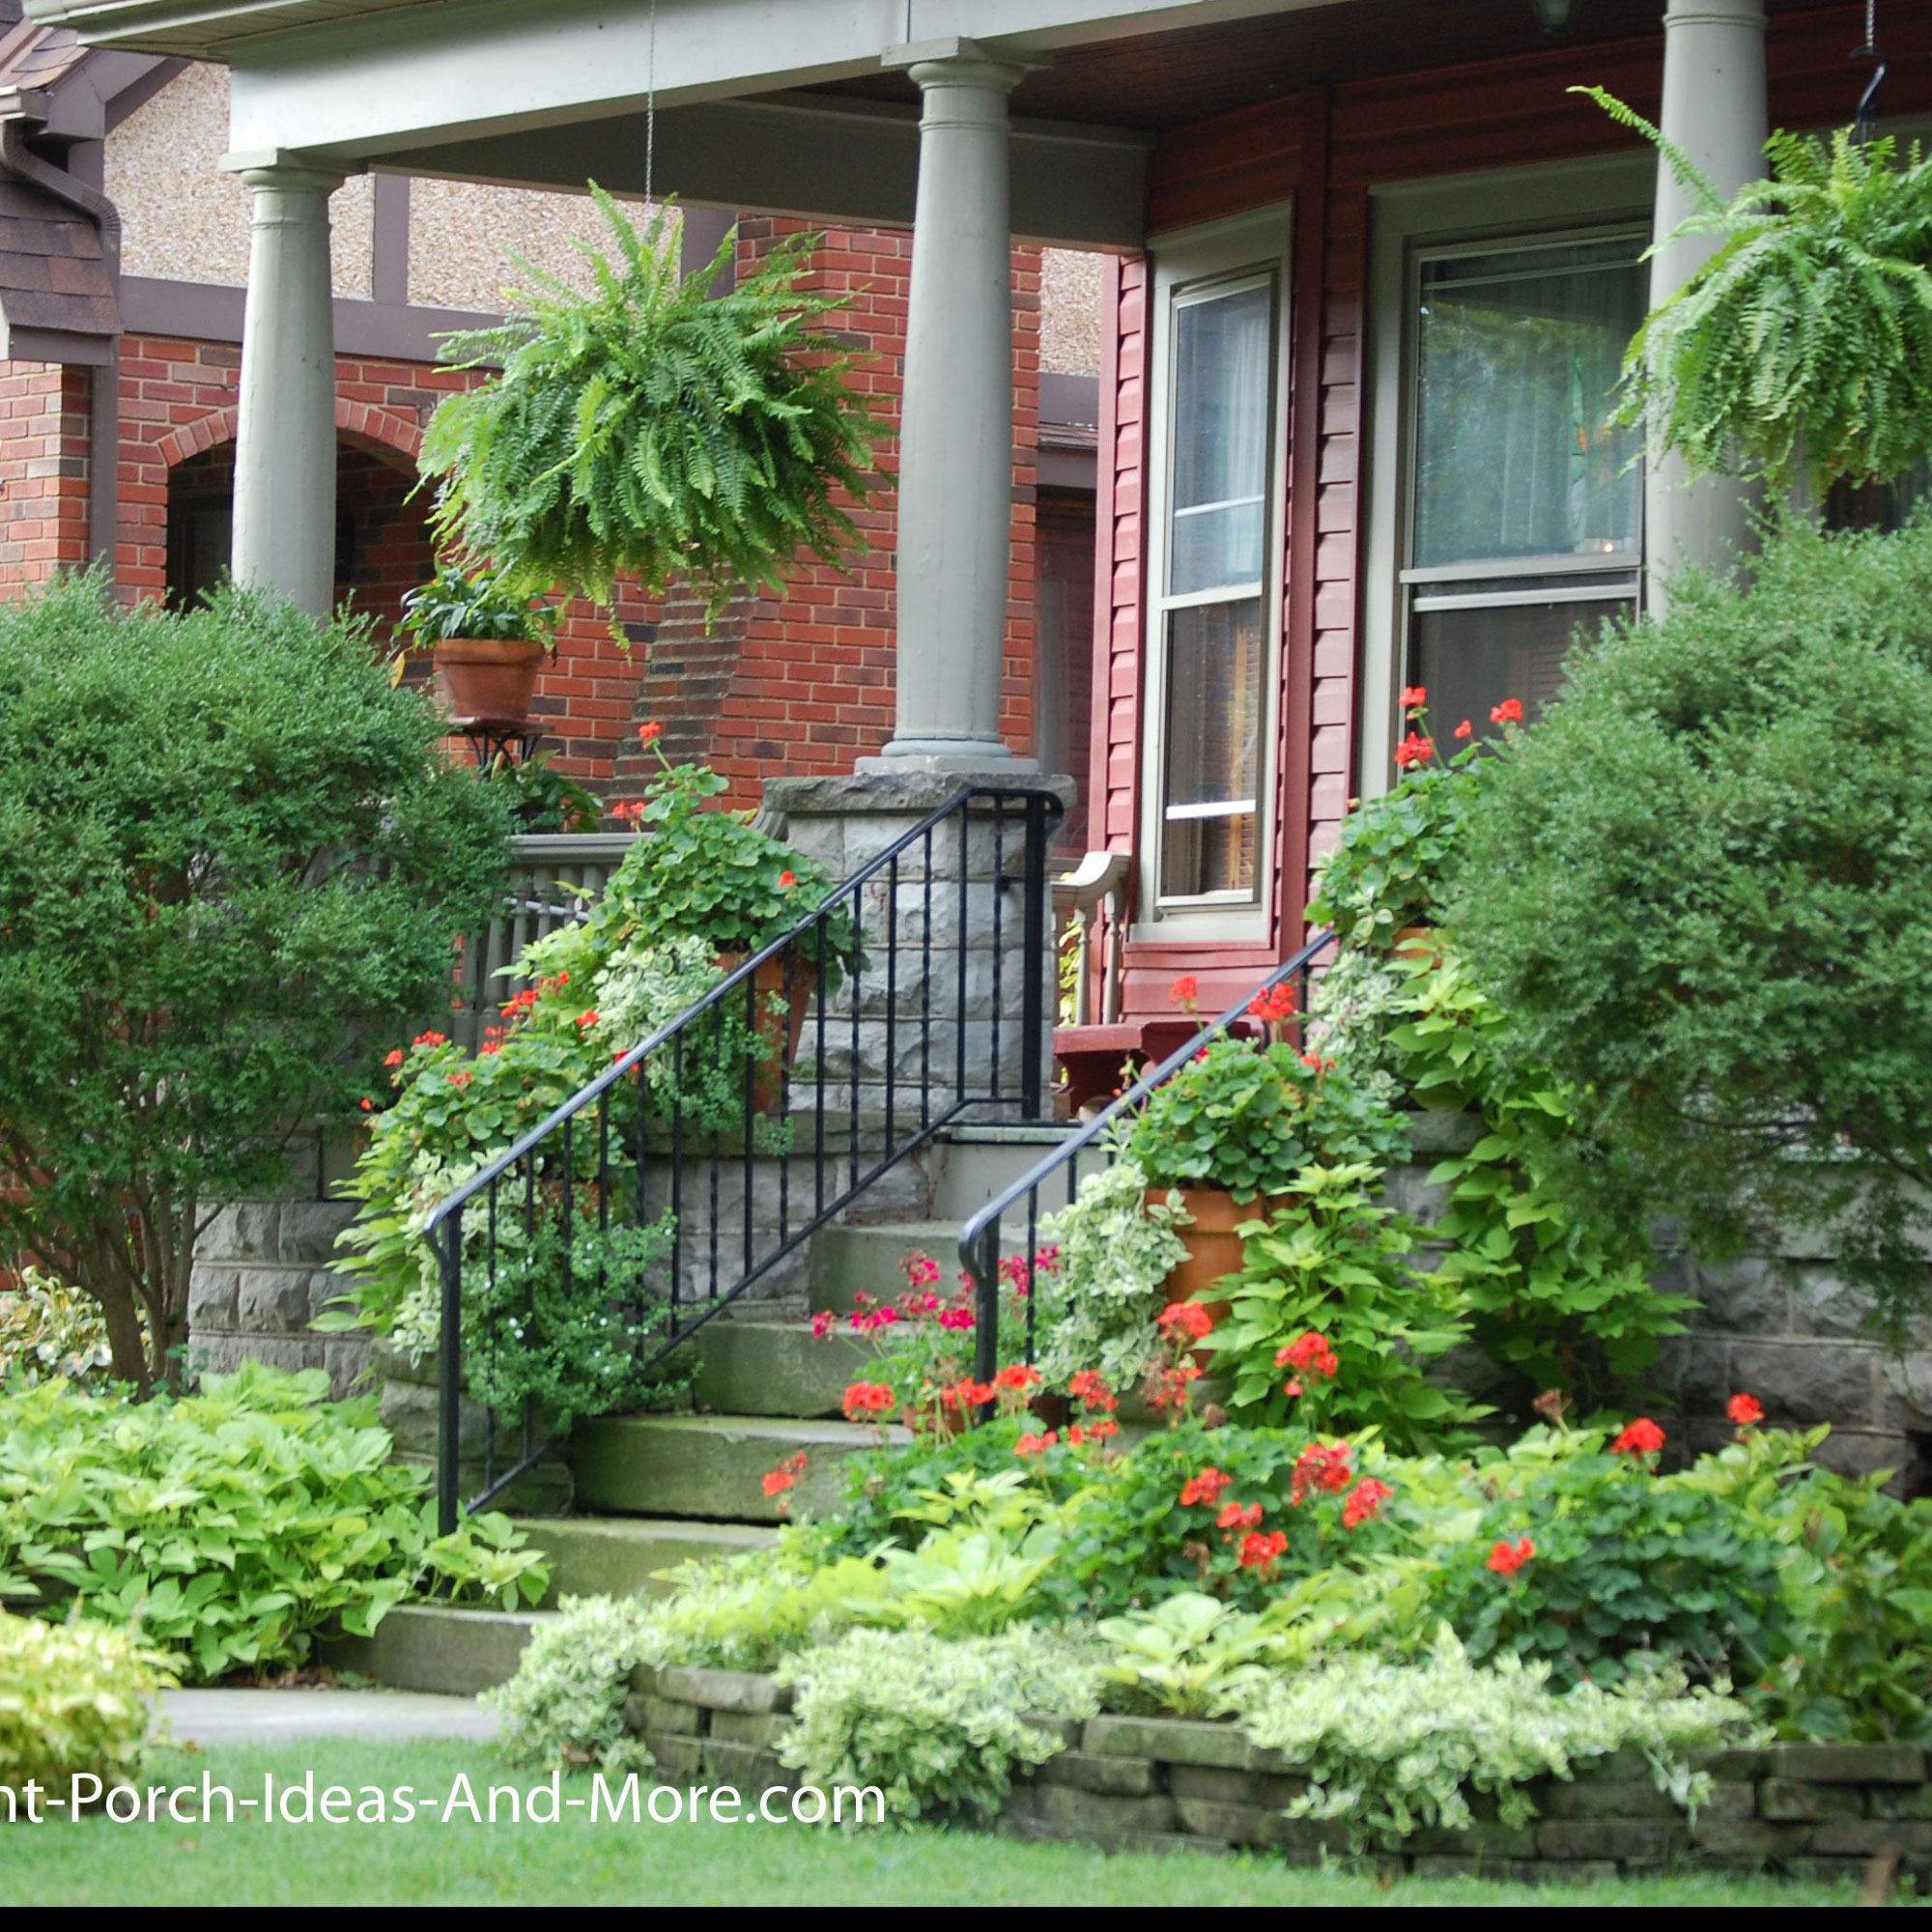 Porch landscaping ideas for your front yard and more for Garden design windows 7